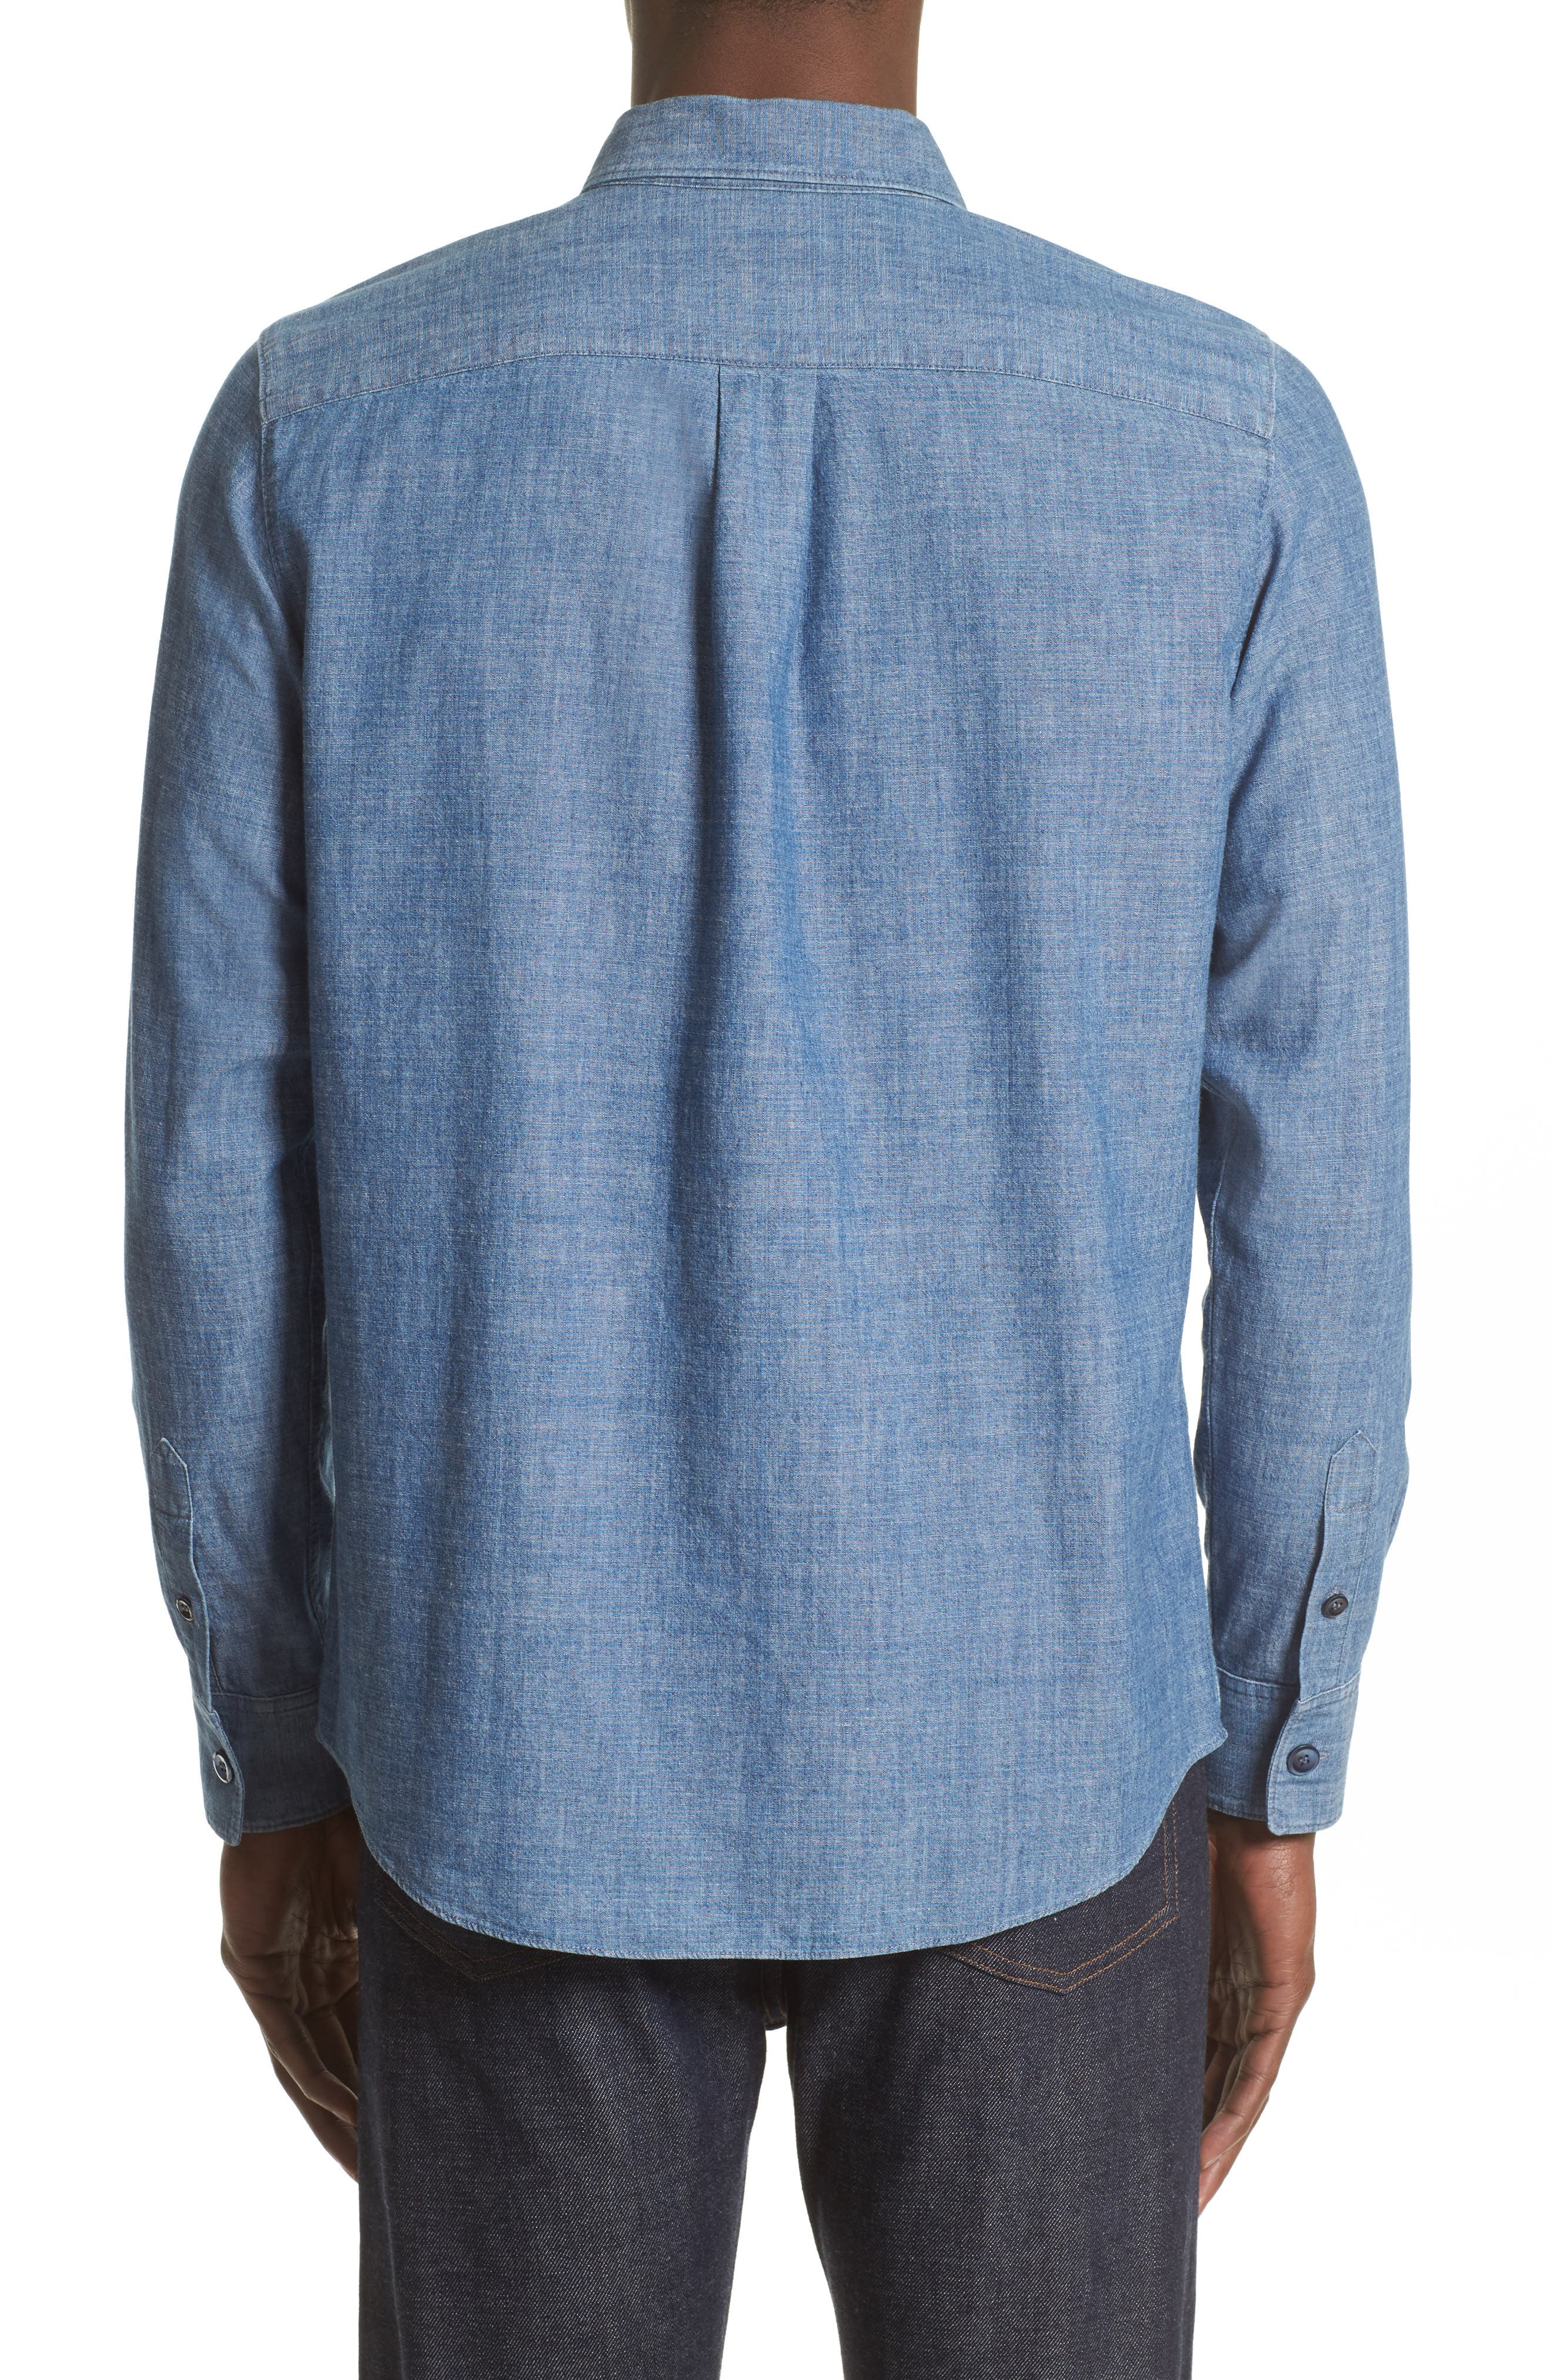 Chambray Chemise Shirt,                             Alternate thumbnail 3, color,                             461